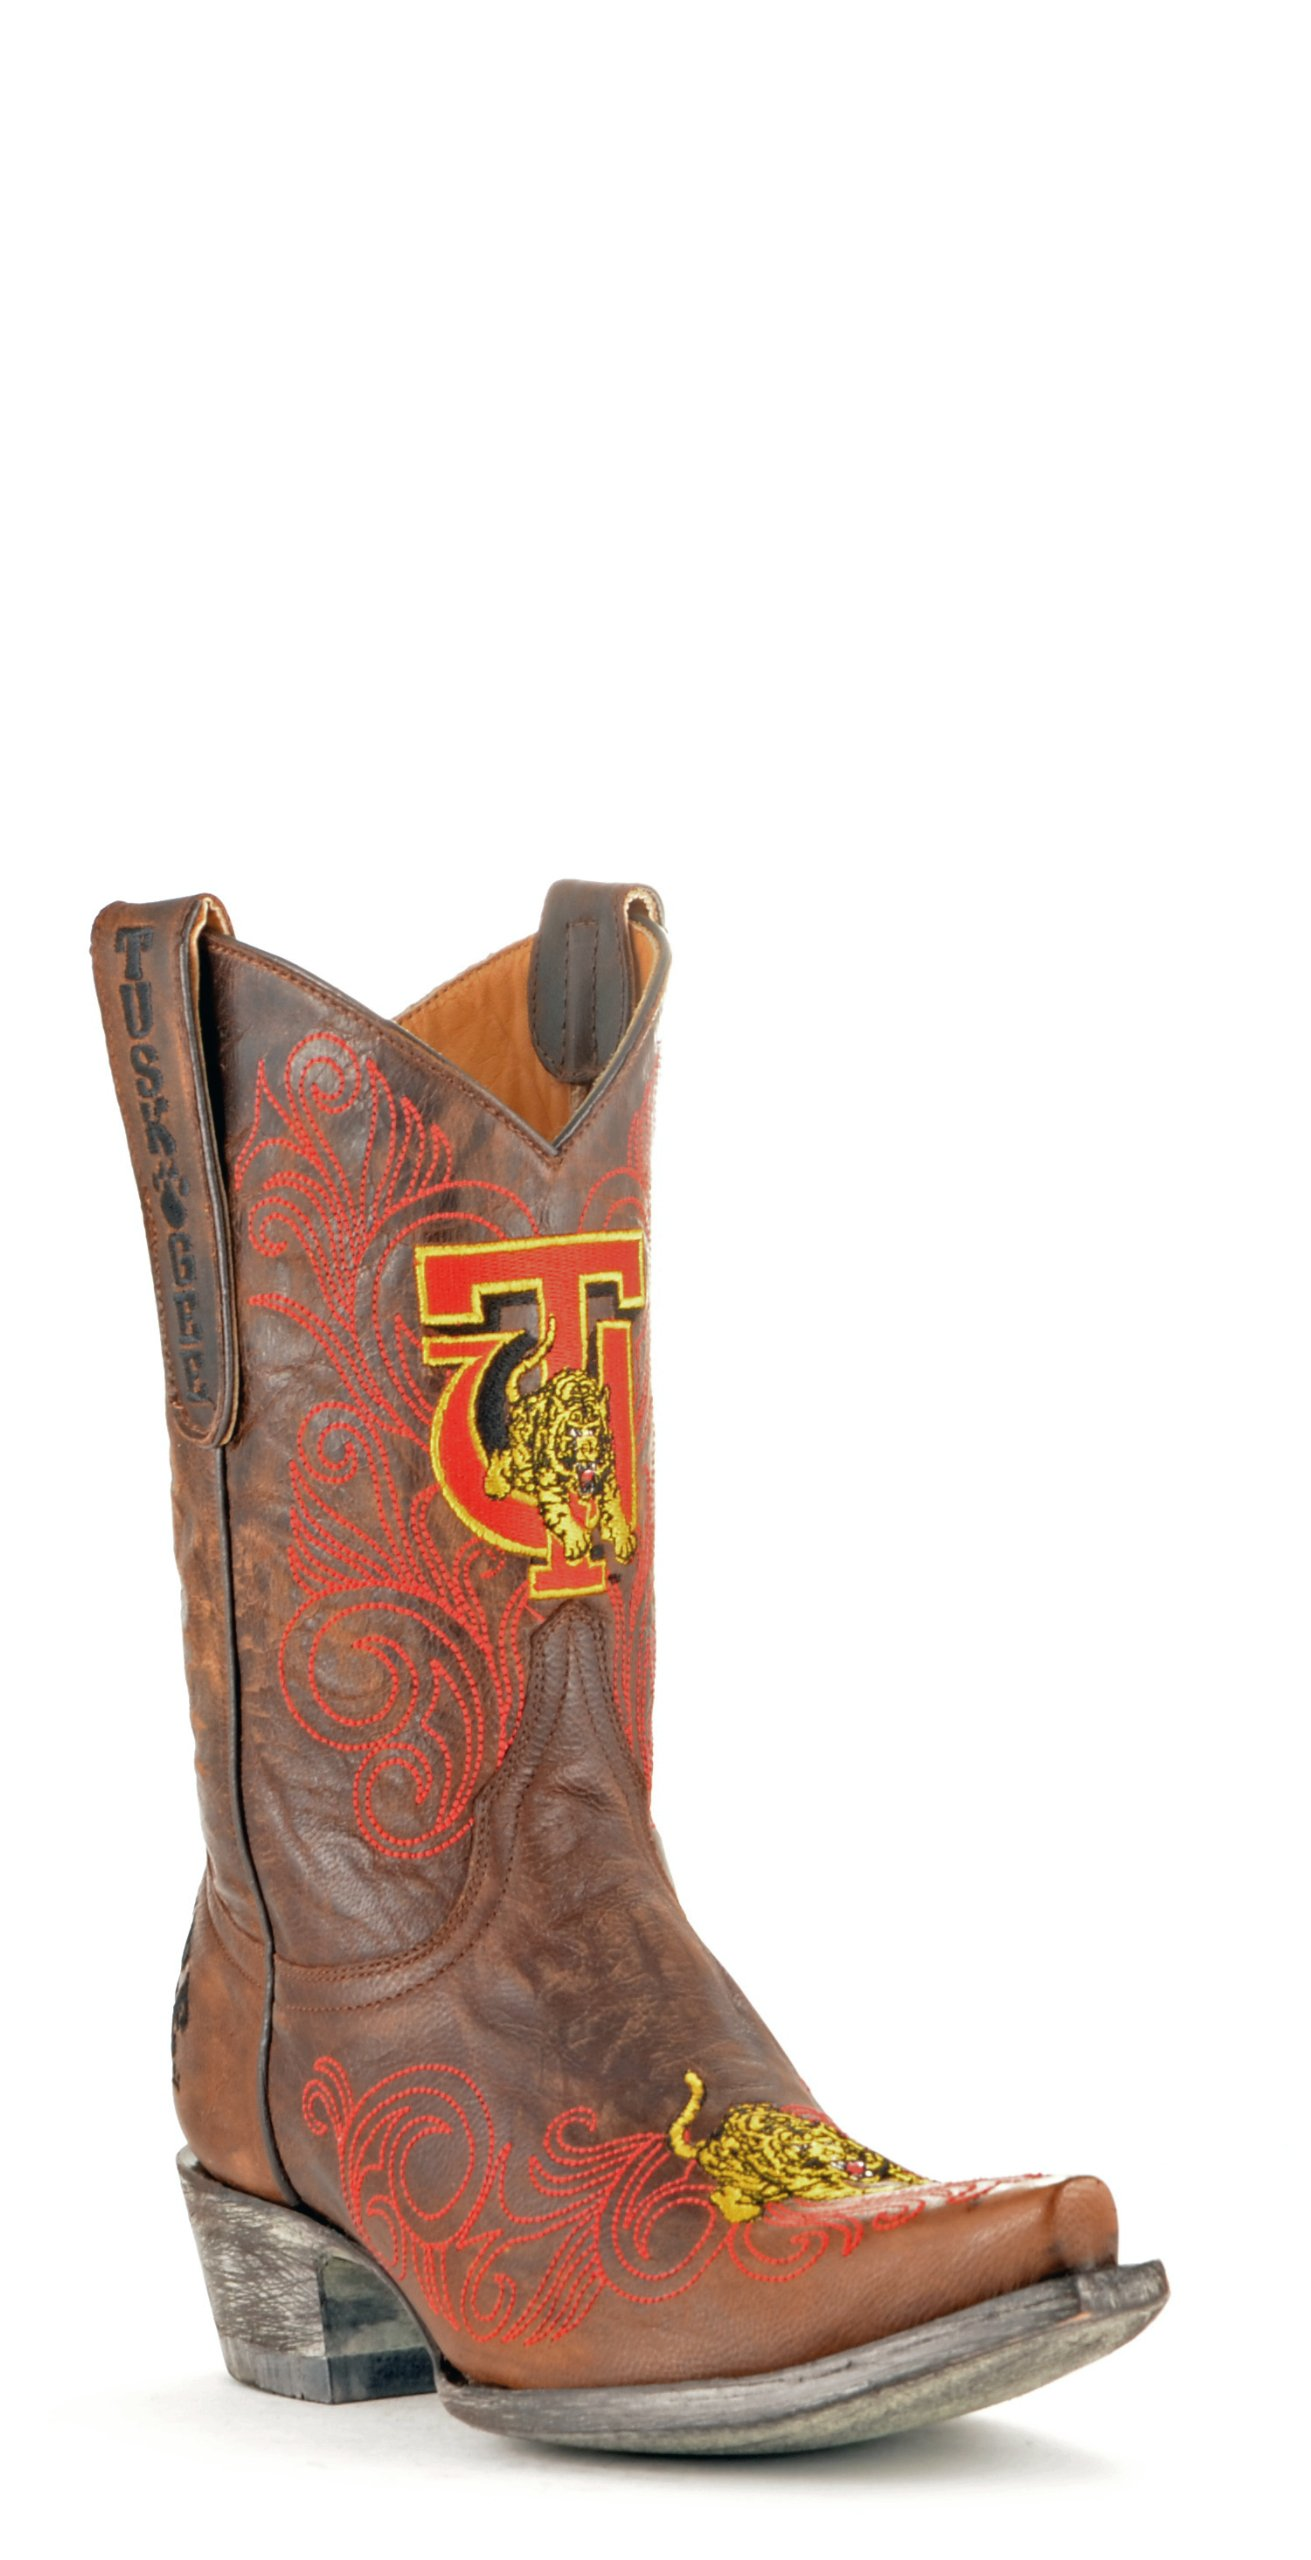 Gameday Boots NCAA Ladies 10 inch University Boot Tuskegee Golden Tigers, 8 B (M) US, Brass by GAMEDAY BOOTS